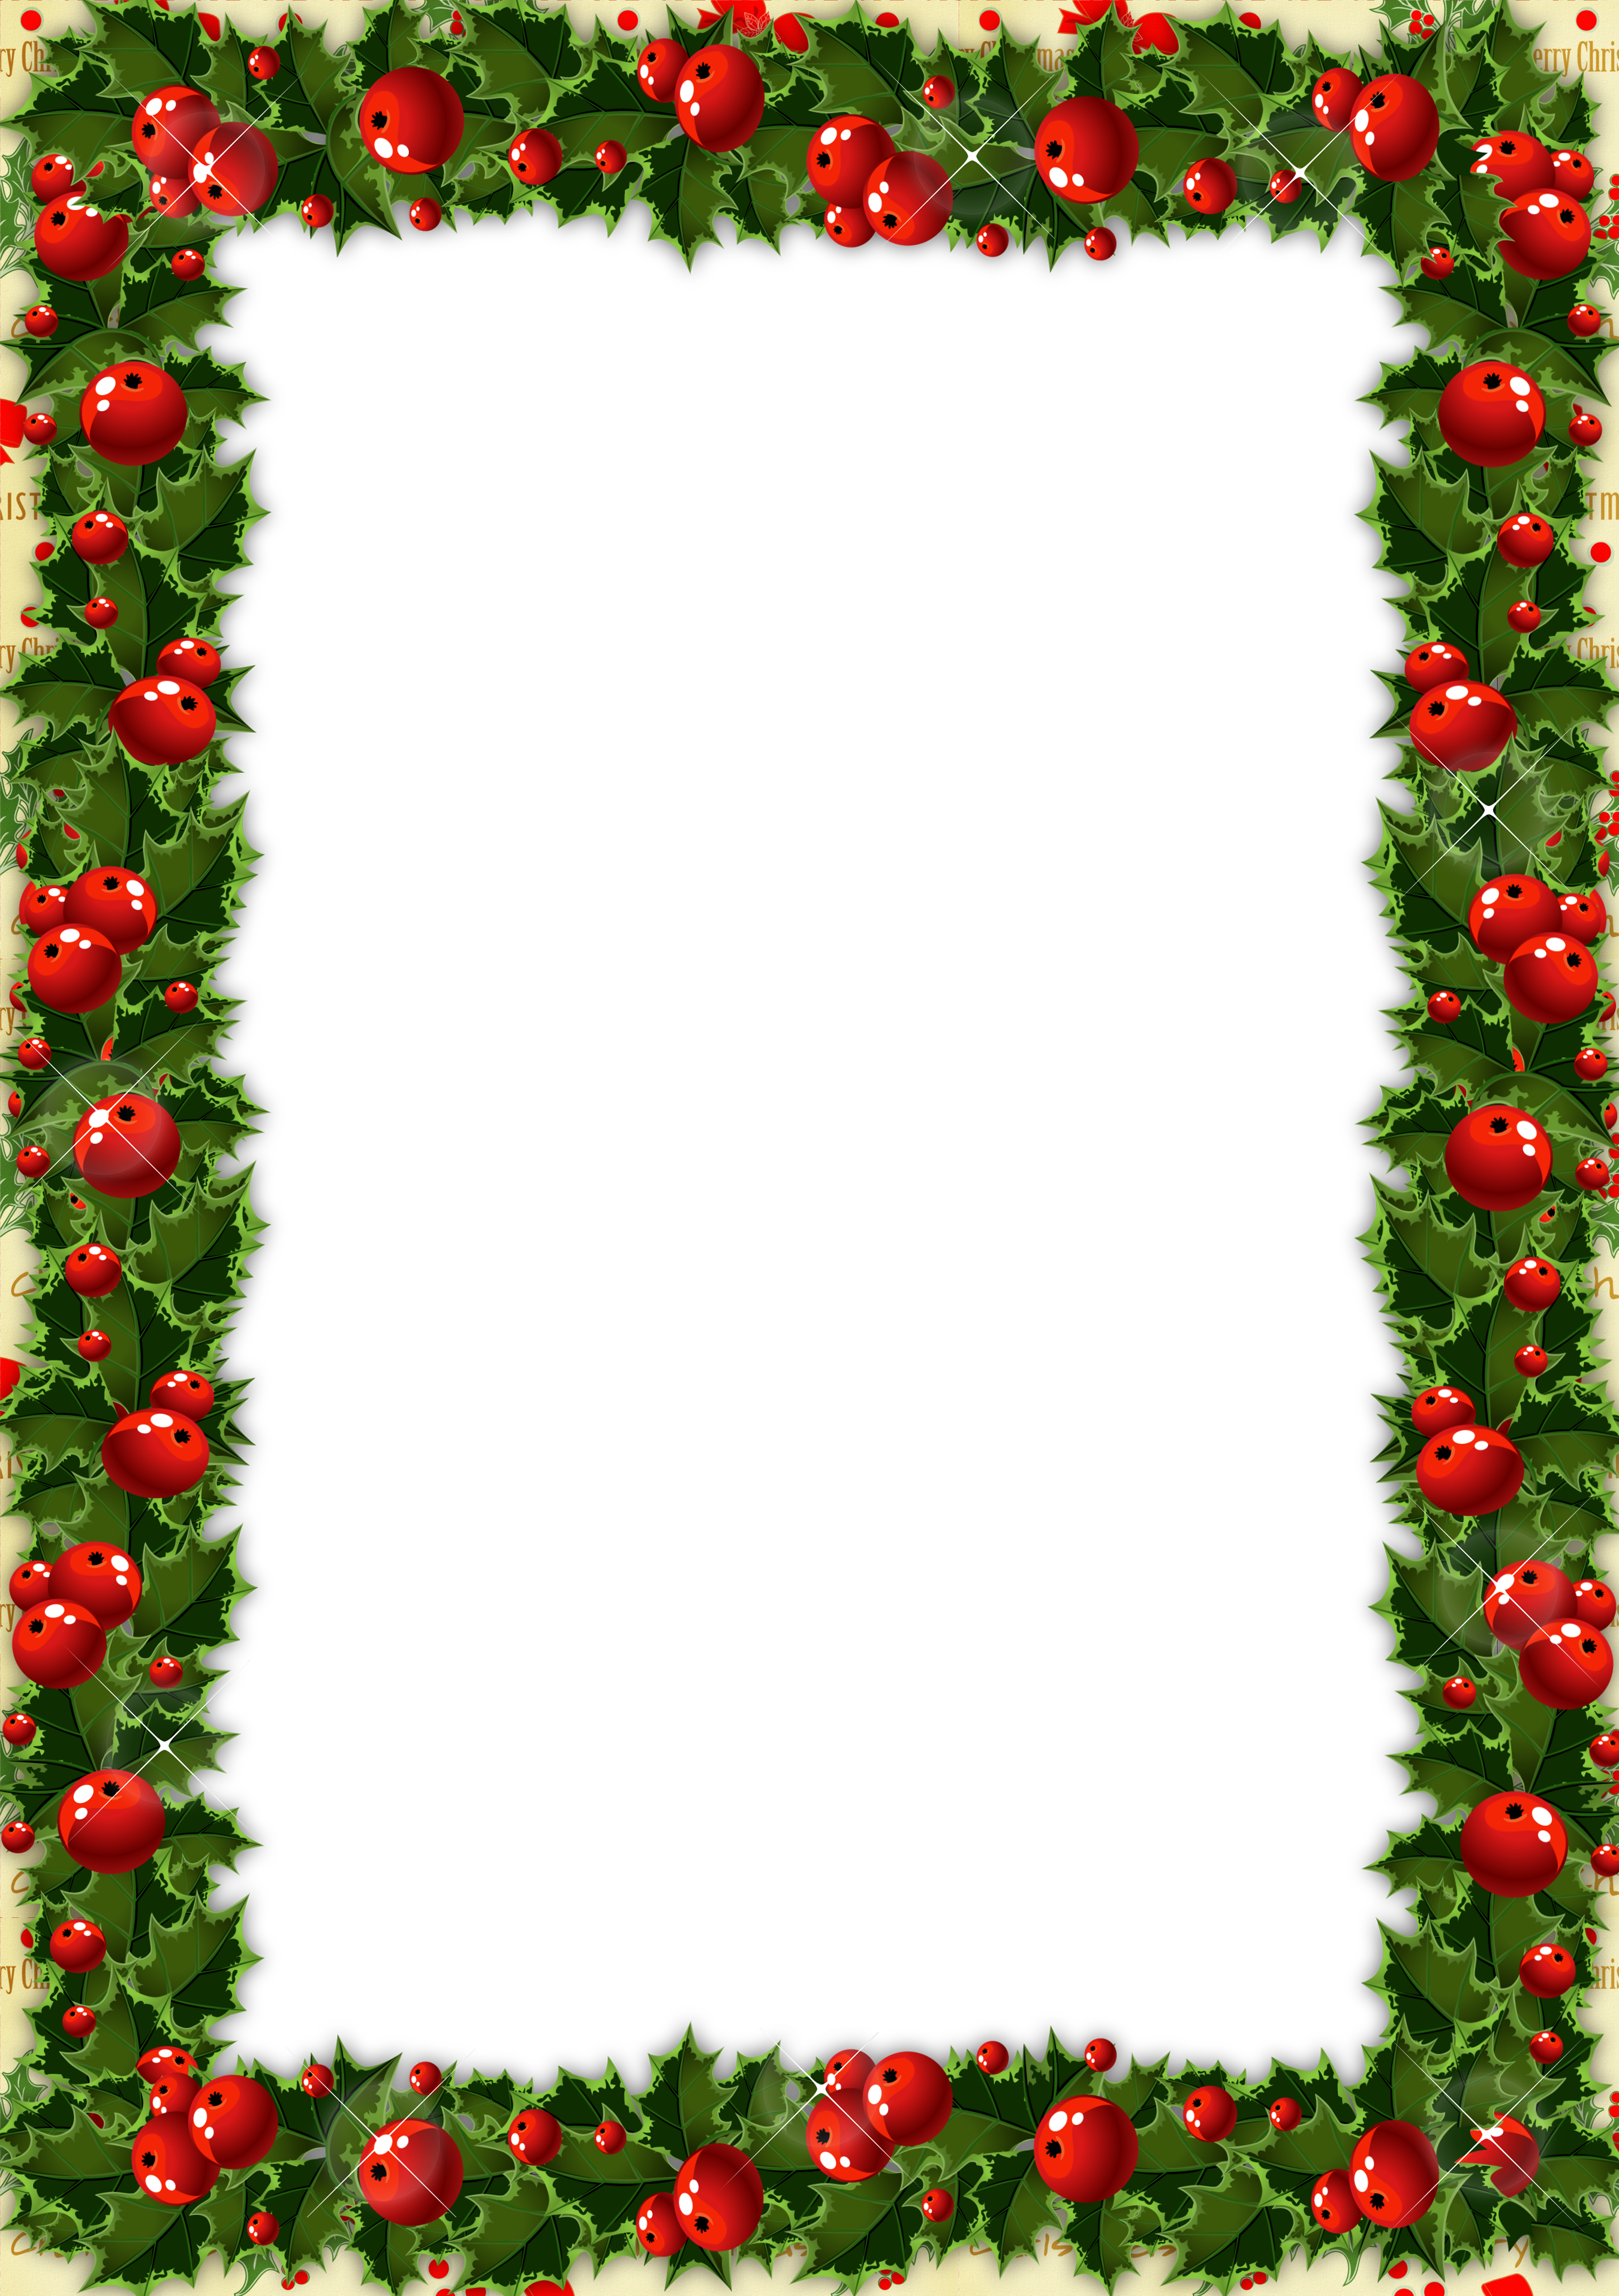 jpg royalty free download Transparent Christmas Photo Frame with Mistletoe